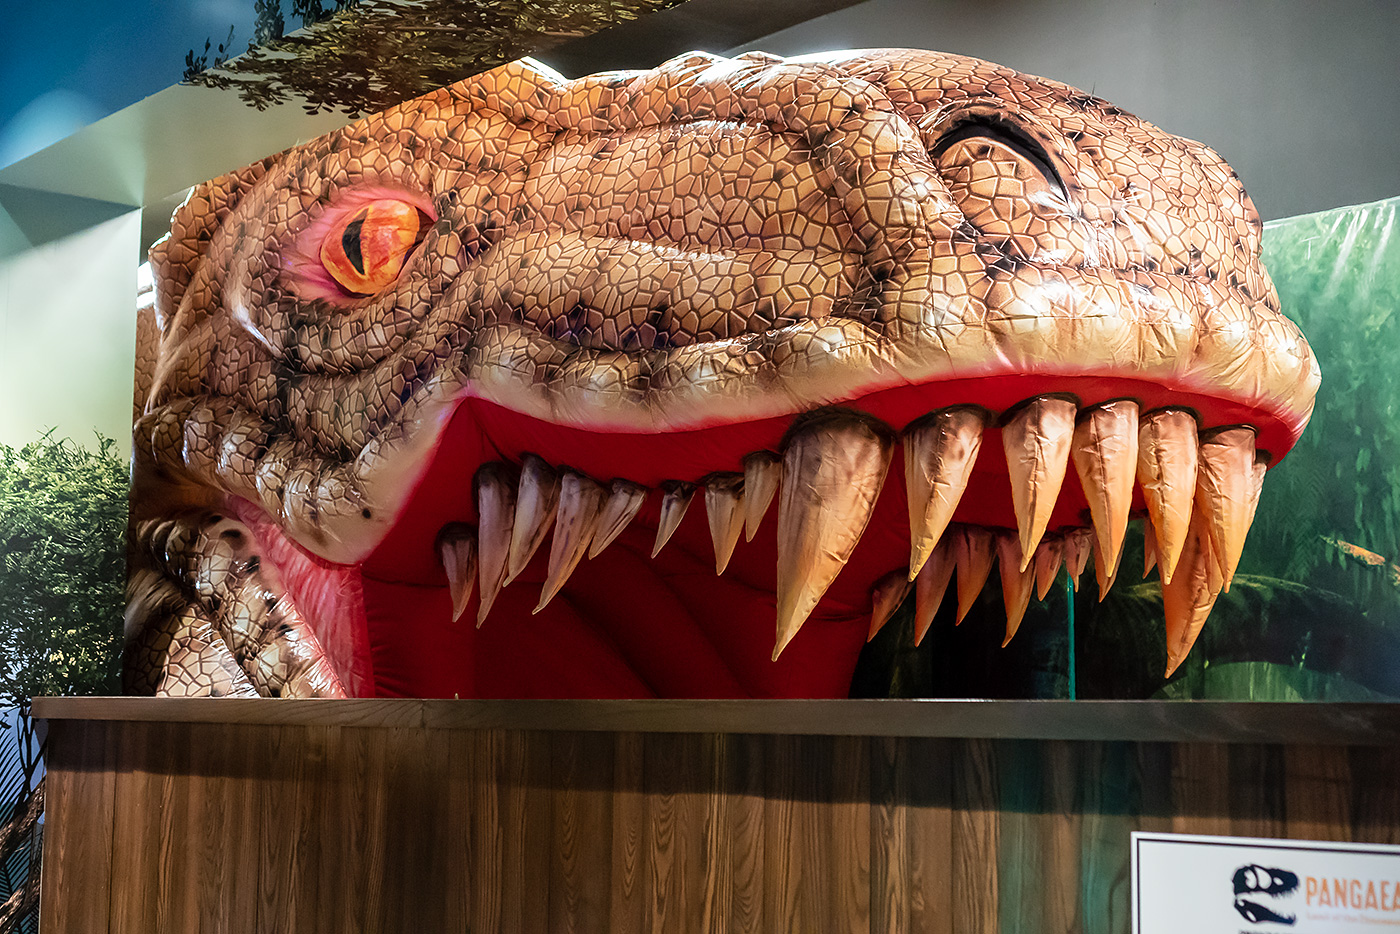 480744a283 This summer, don't miss out on the dino-mite fun Pangaea, Land of the  Dinosaurs. From realistic animatronic dinosaurs, to dino races, face  painting, ...